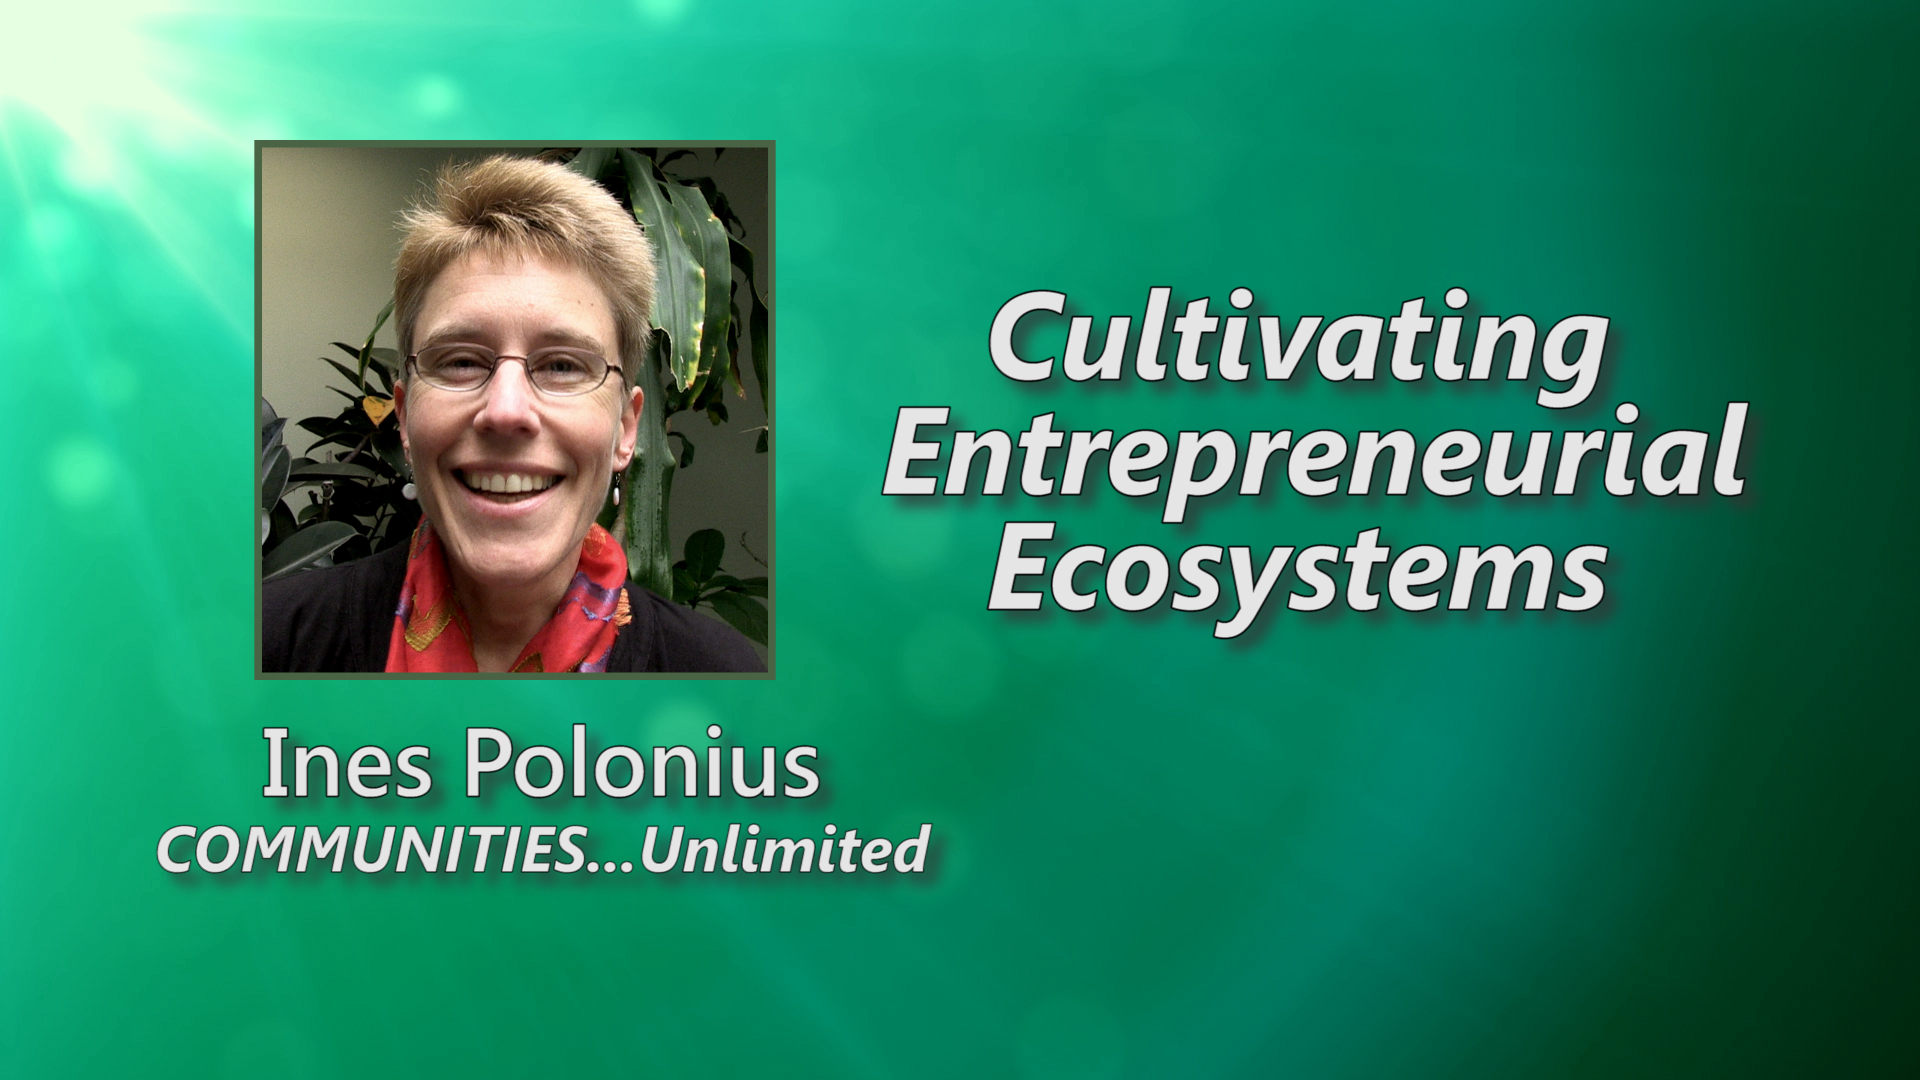 Video - Cultivating Entrepreneurial Ecosystems